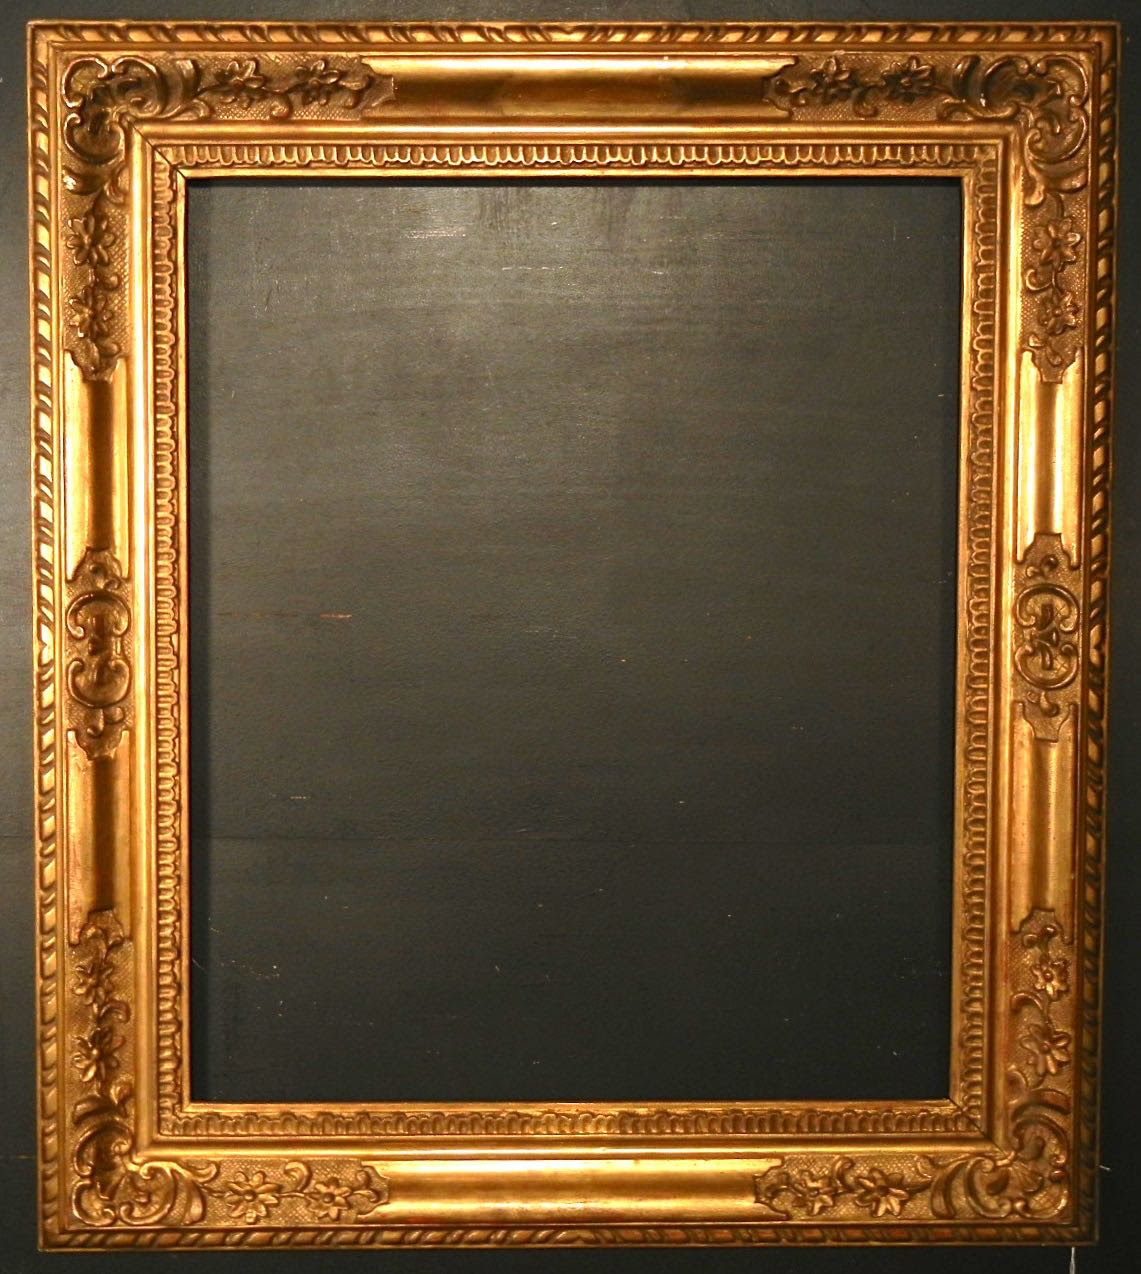 American Arts Crafts Frame Ammi Ribar Antiques Fine Period